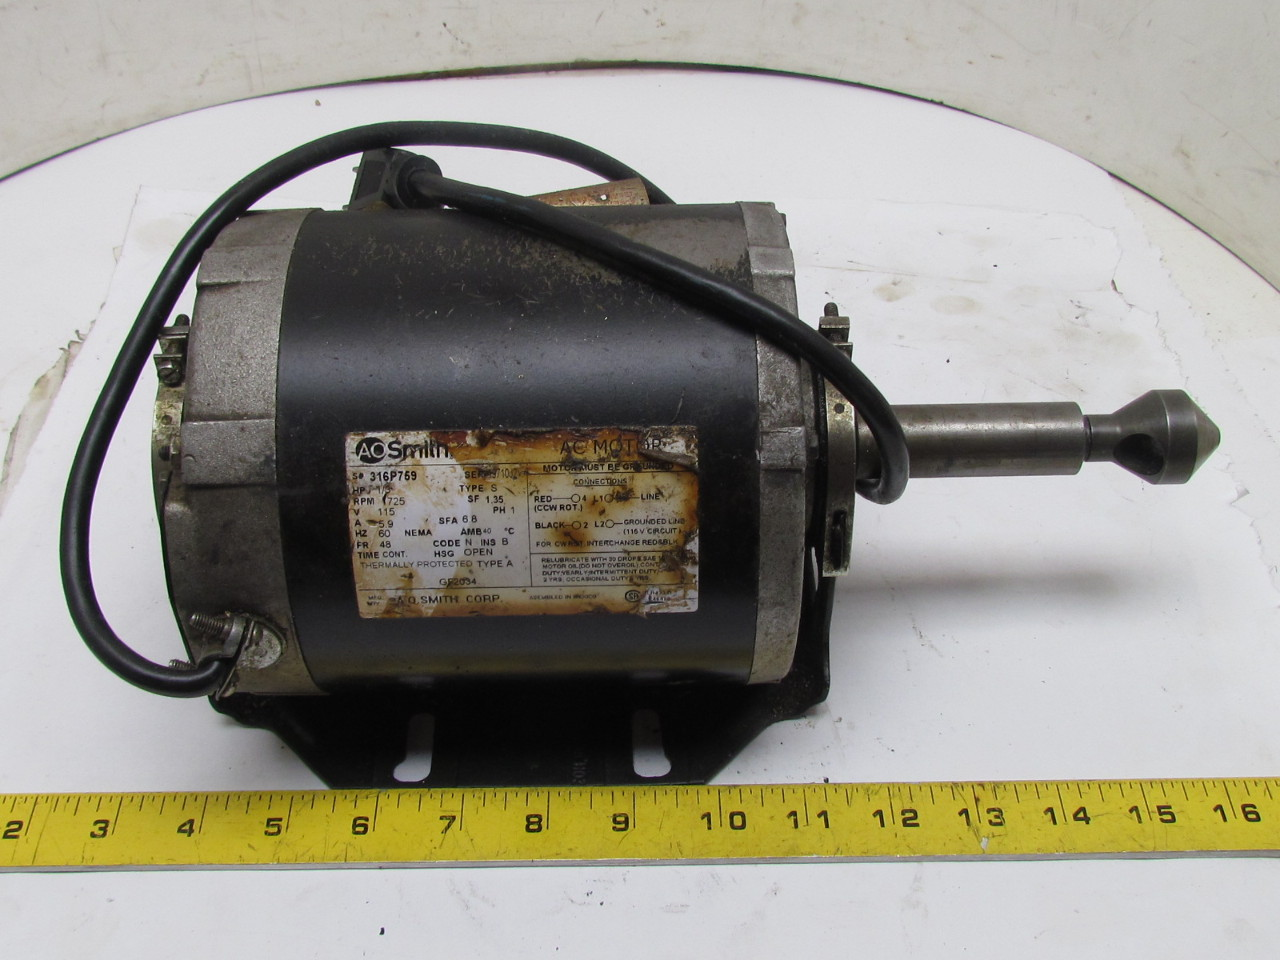 A o smith 1 3 hp 1 phase motor 115v w countersink deburing for 1 hp 3 phase motor